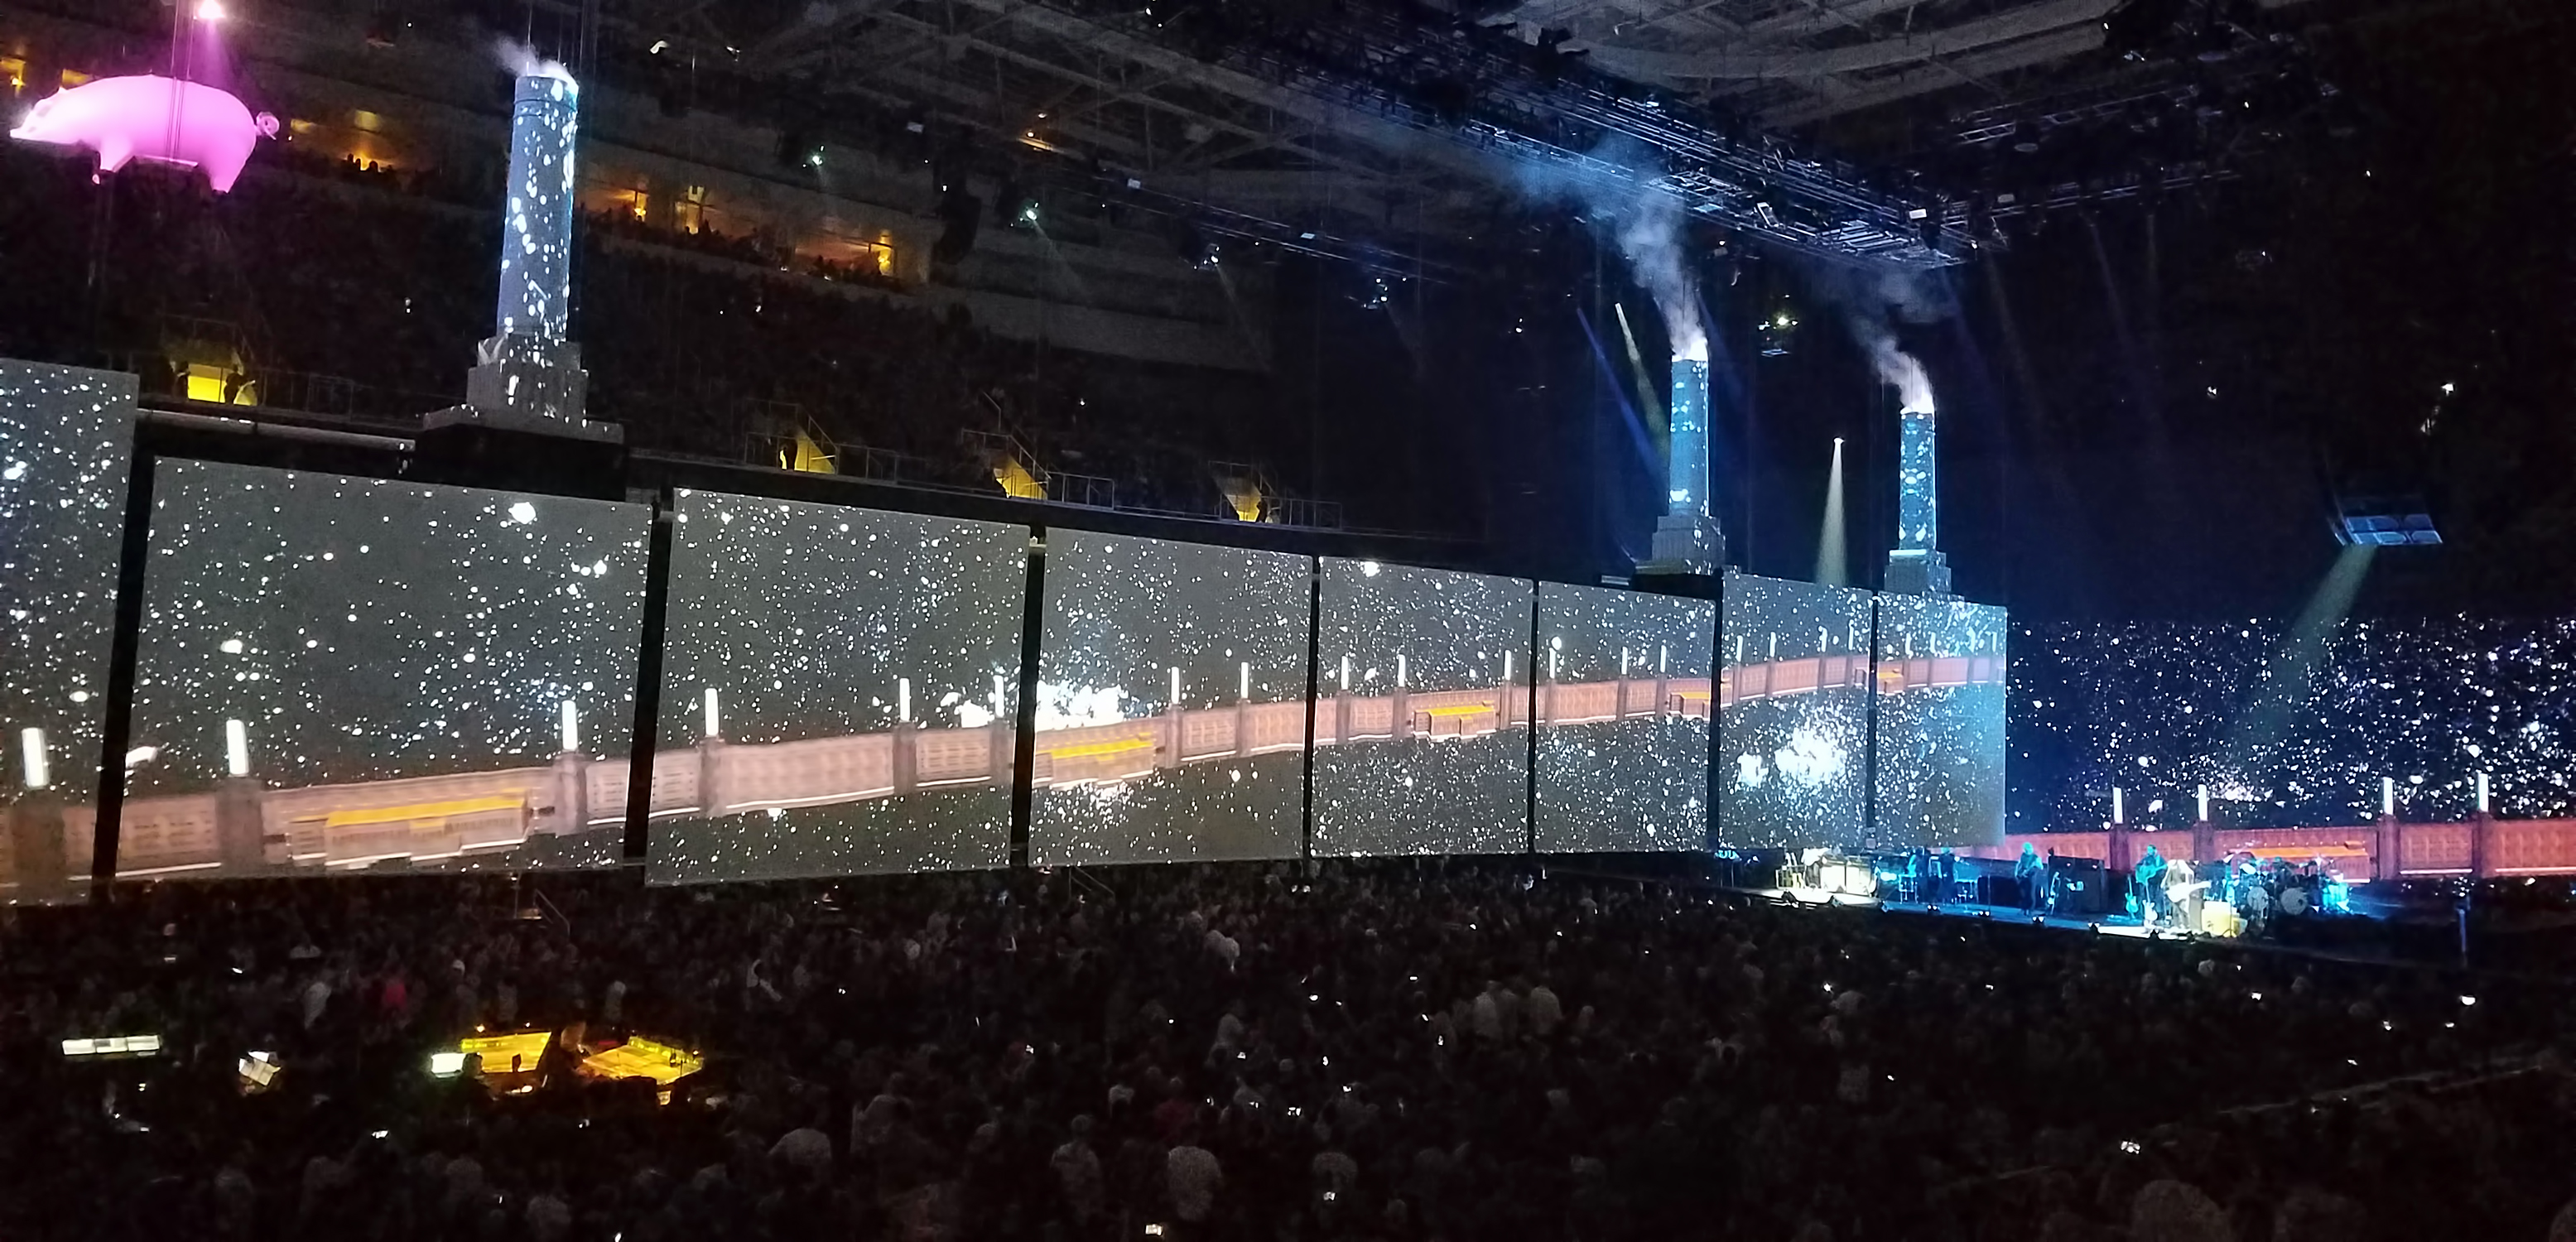 Roger Waters Tour 2017 - View of the Stage and Audience - US and Them Tour